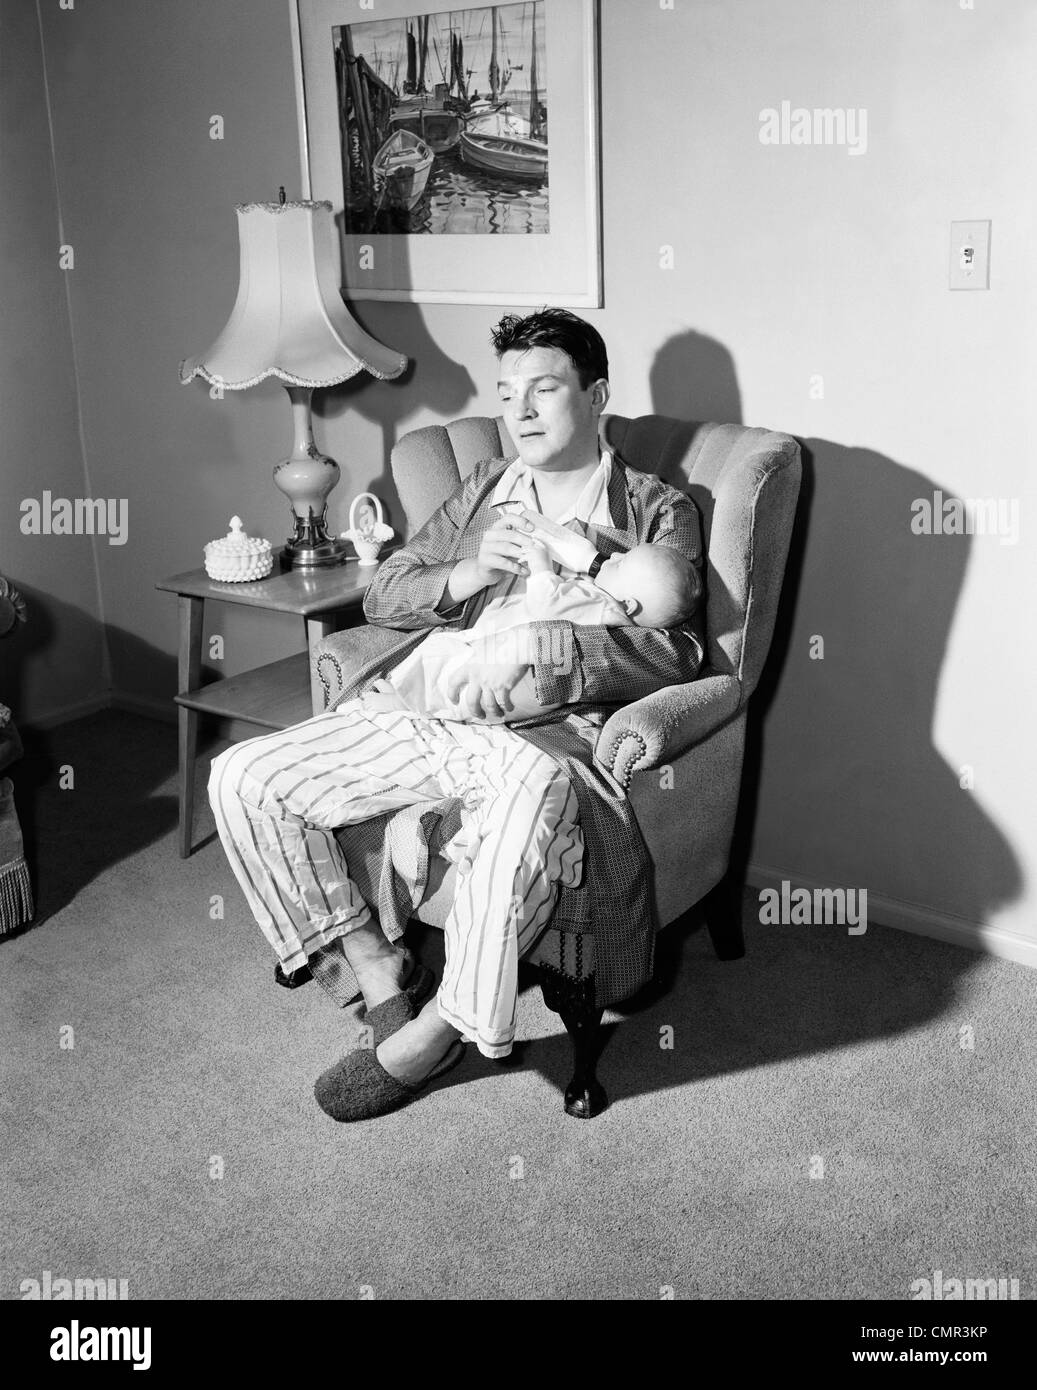 1950s TIRED FATHER GIVING BABY BOTTLE AT NIGHTTIME FEEDING - Stock Image